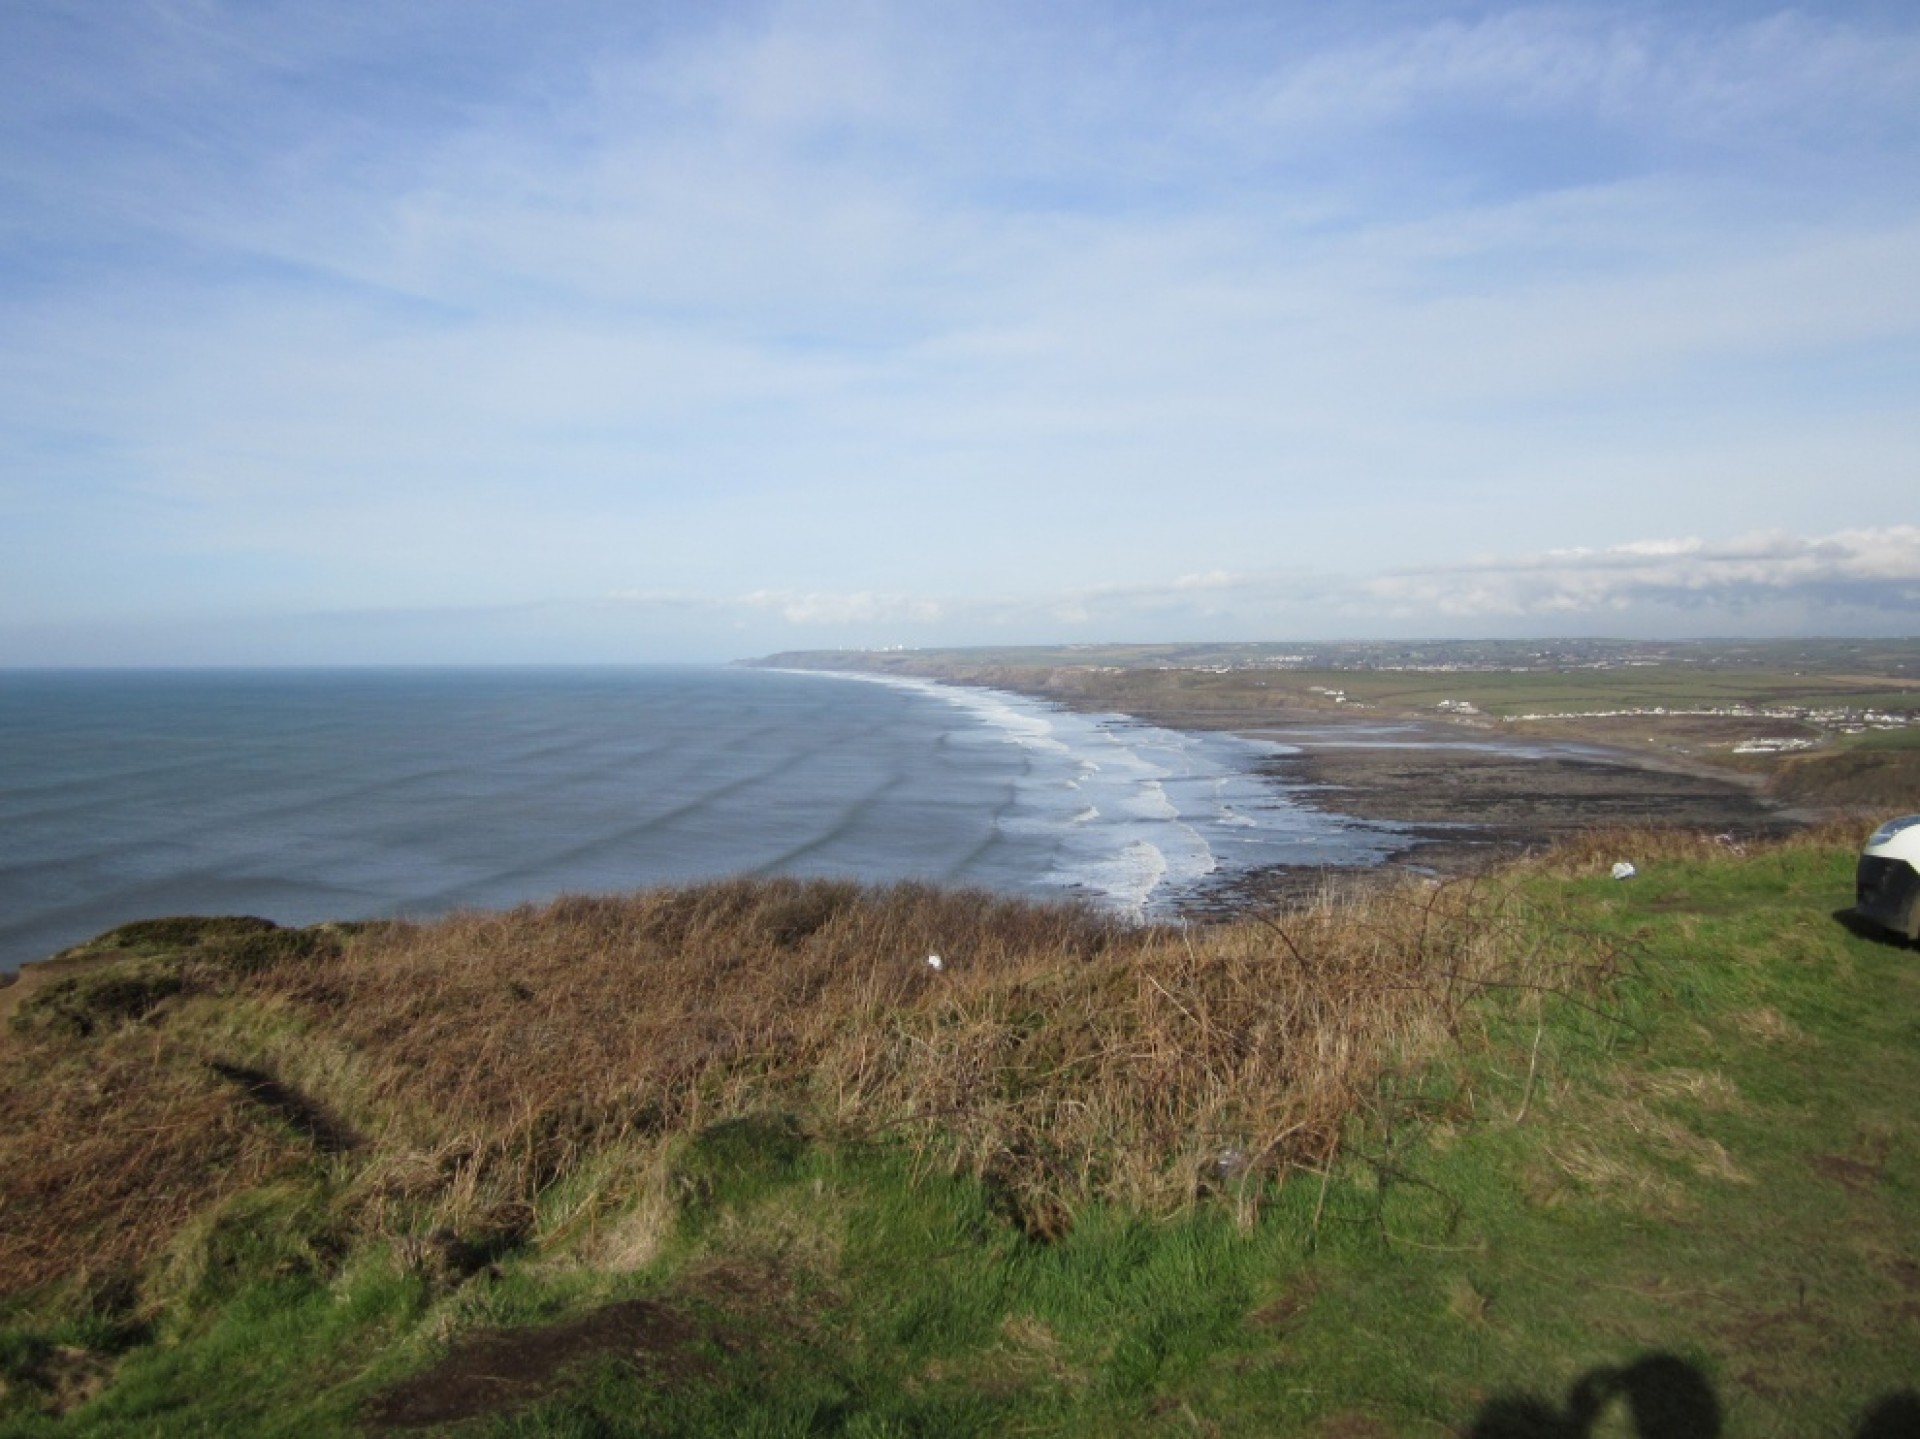 Gil Hogarth's photo of Widemouth Bay